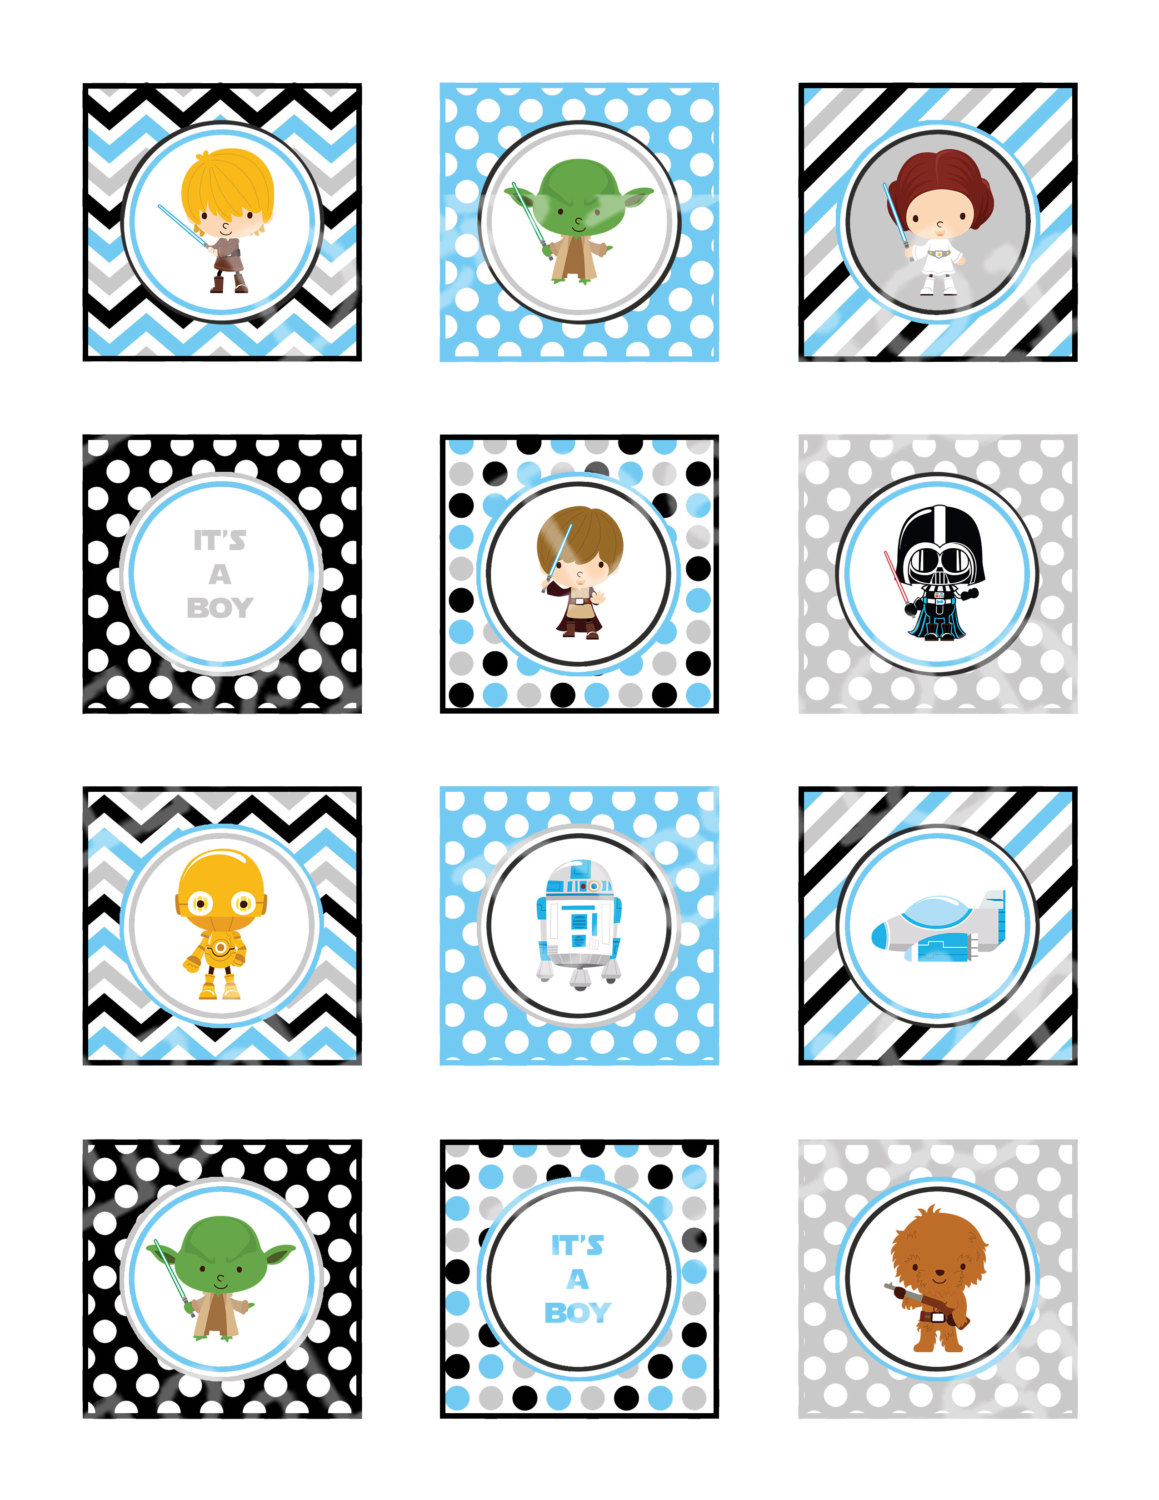 Star Wars clipart baby shower Item? Like this Toppers 2'